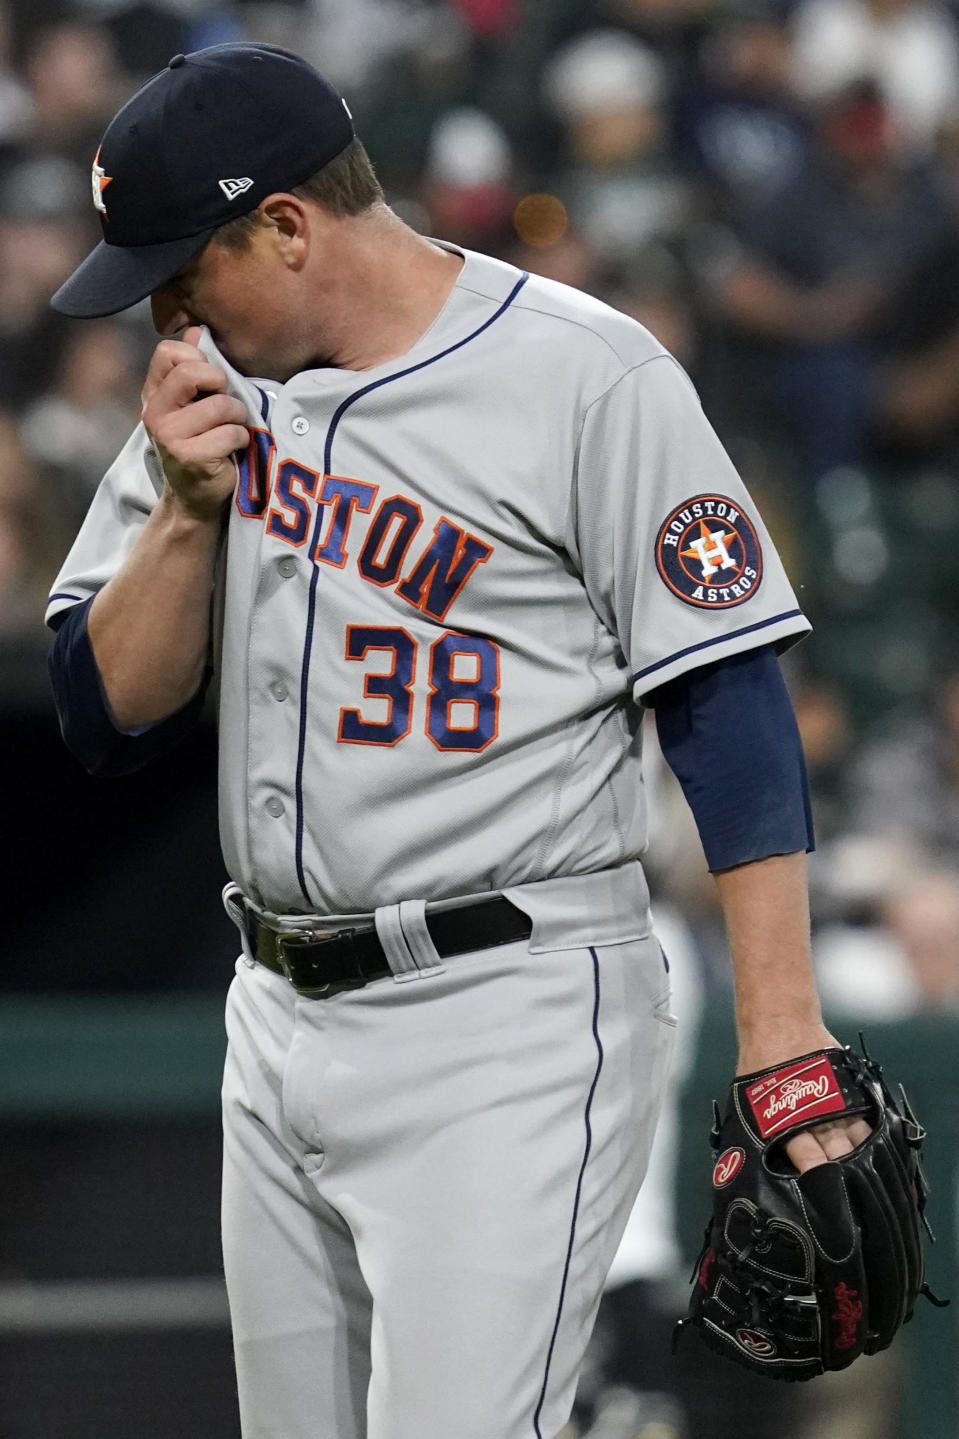 Houston Astros relief pitcher Joe Smith wipes his face as he walks to the dugout after the sixth inning of the team's baseball game against the Chicago White Sox in Chicago, Saturday, July 17, 2021. (AP Photo/Nam Y. Huh)